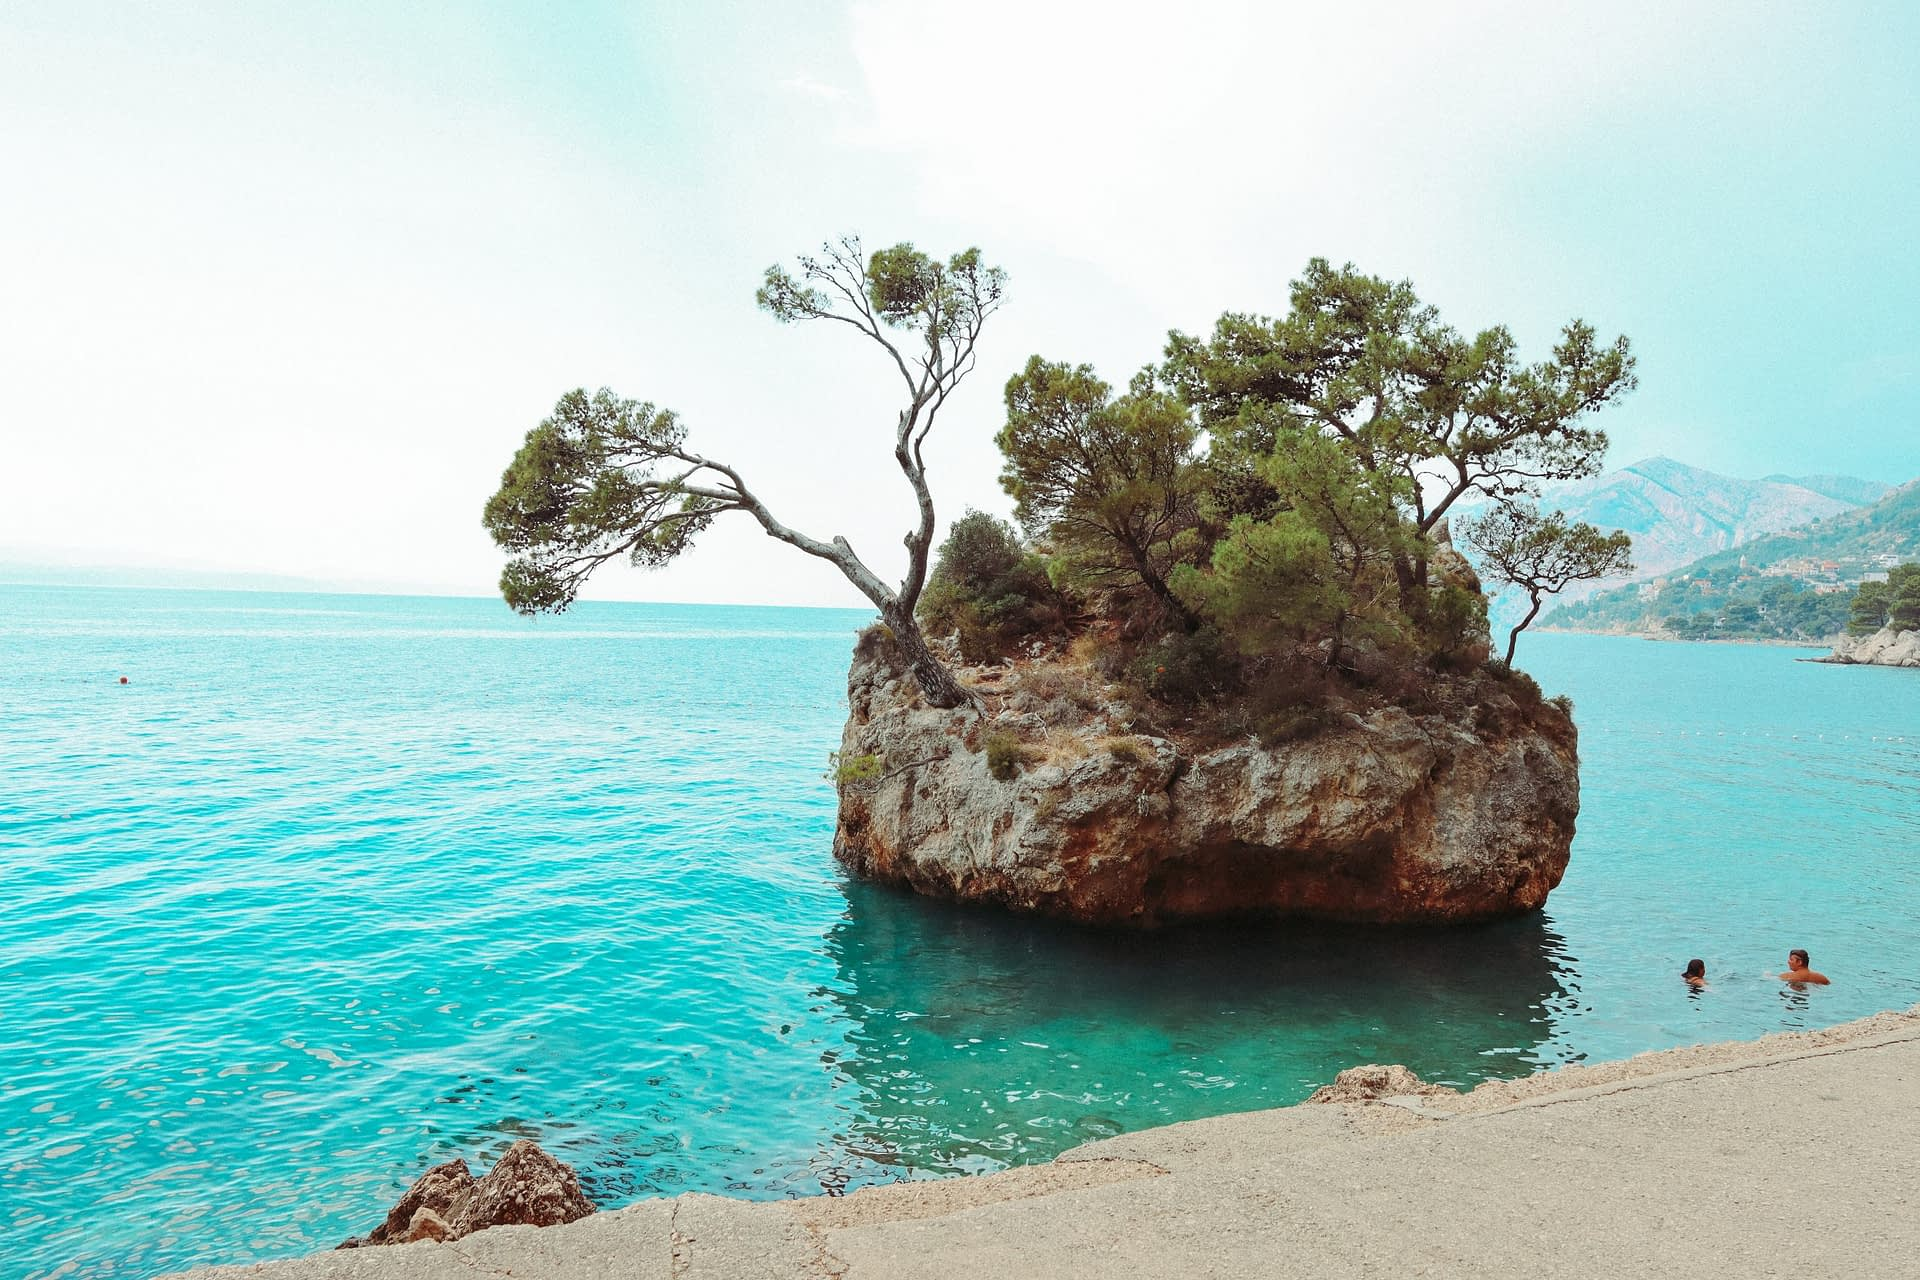 A small island in the ocean with pine trees on it. Your guide to Brela